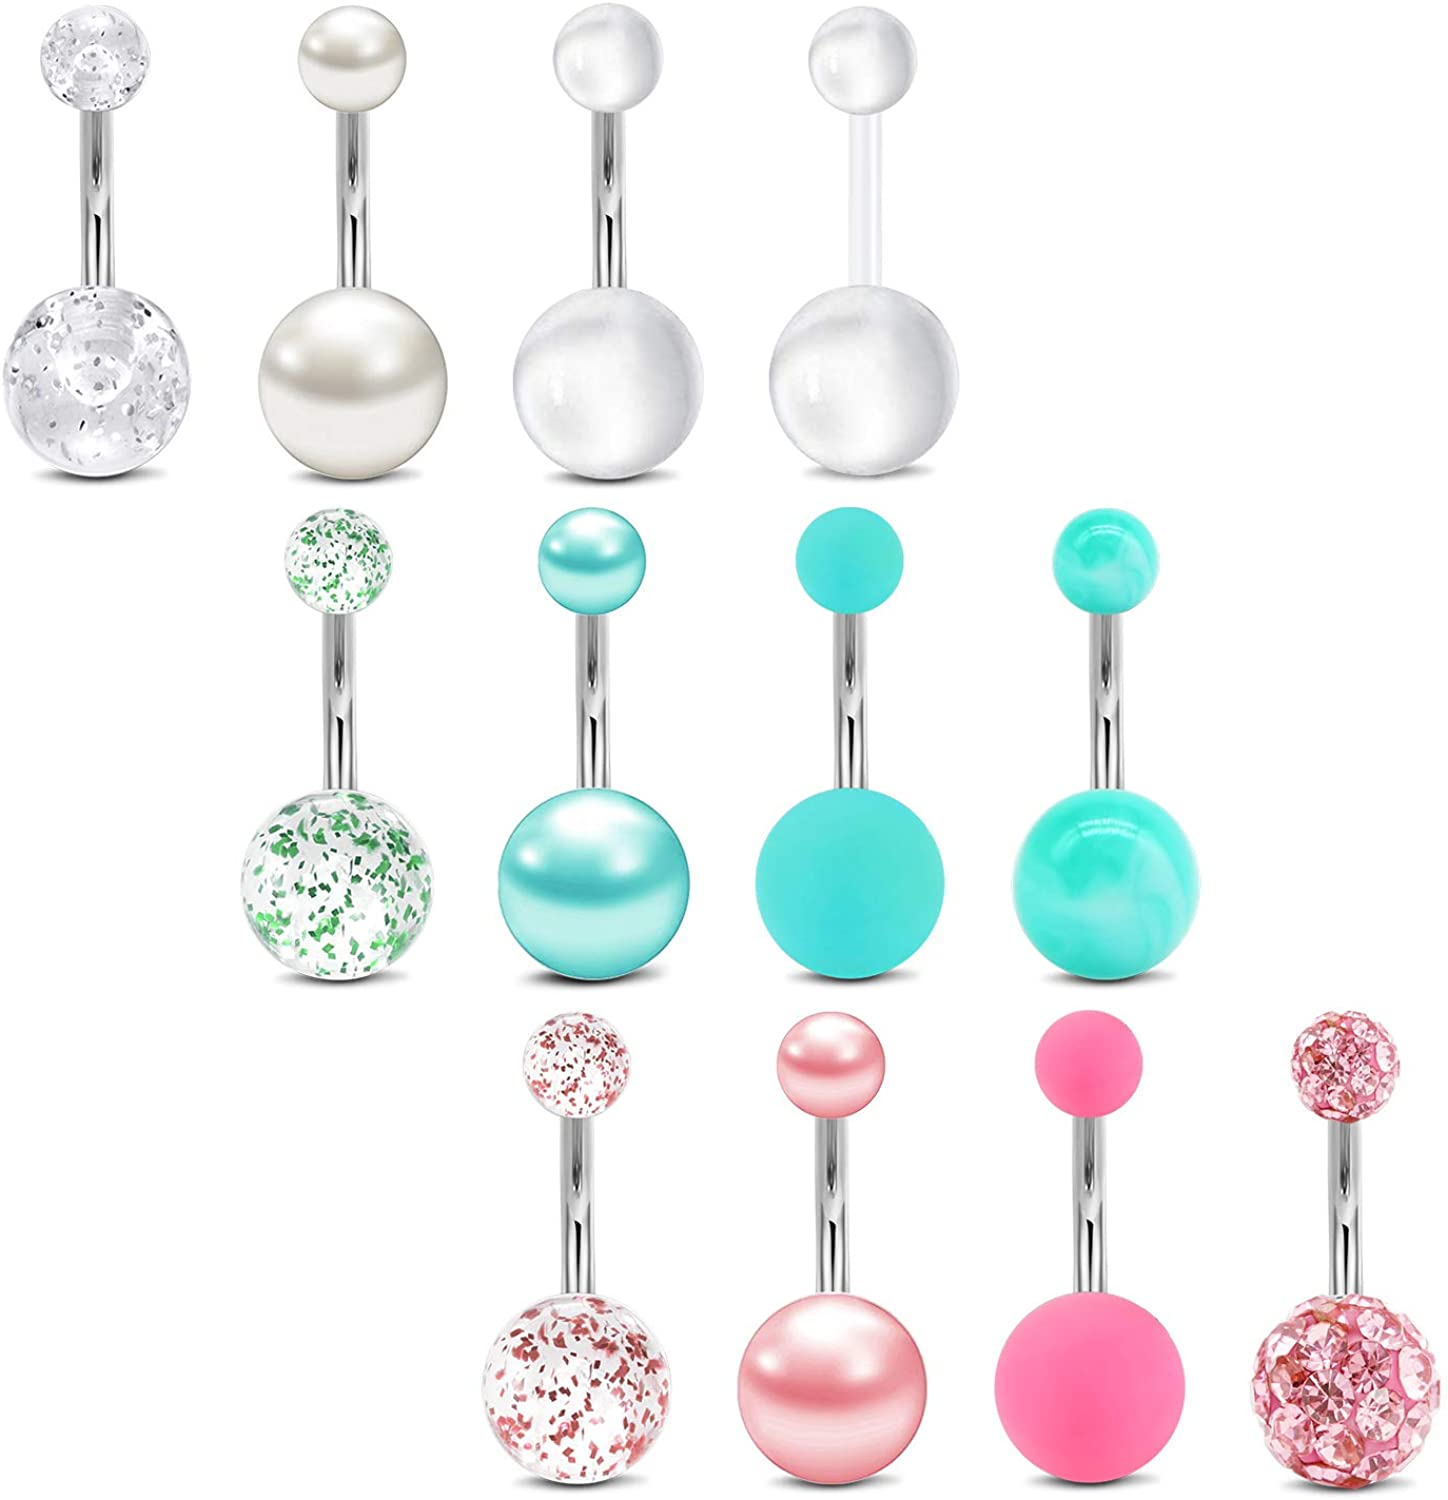 MODRSA Belly Button Rings Surgical Steel 14G Pearl Belly Ring Navel Piercings Jewelry for Women Girls Clear Retainers 10mm Silver Pink Black